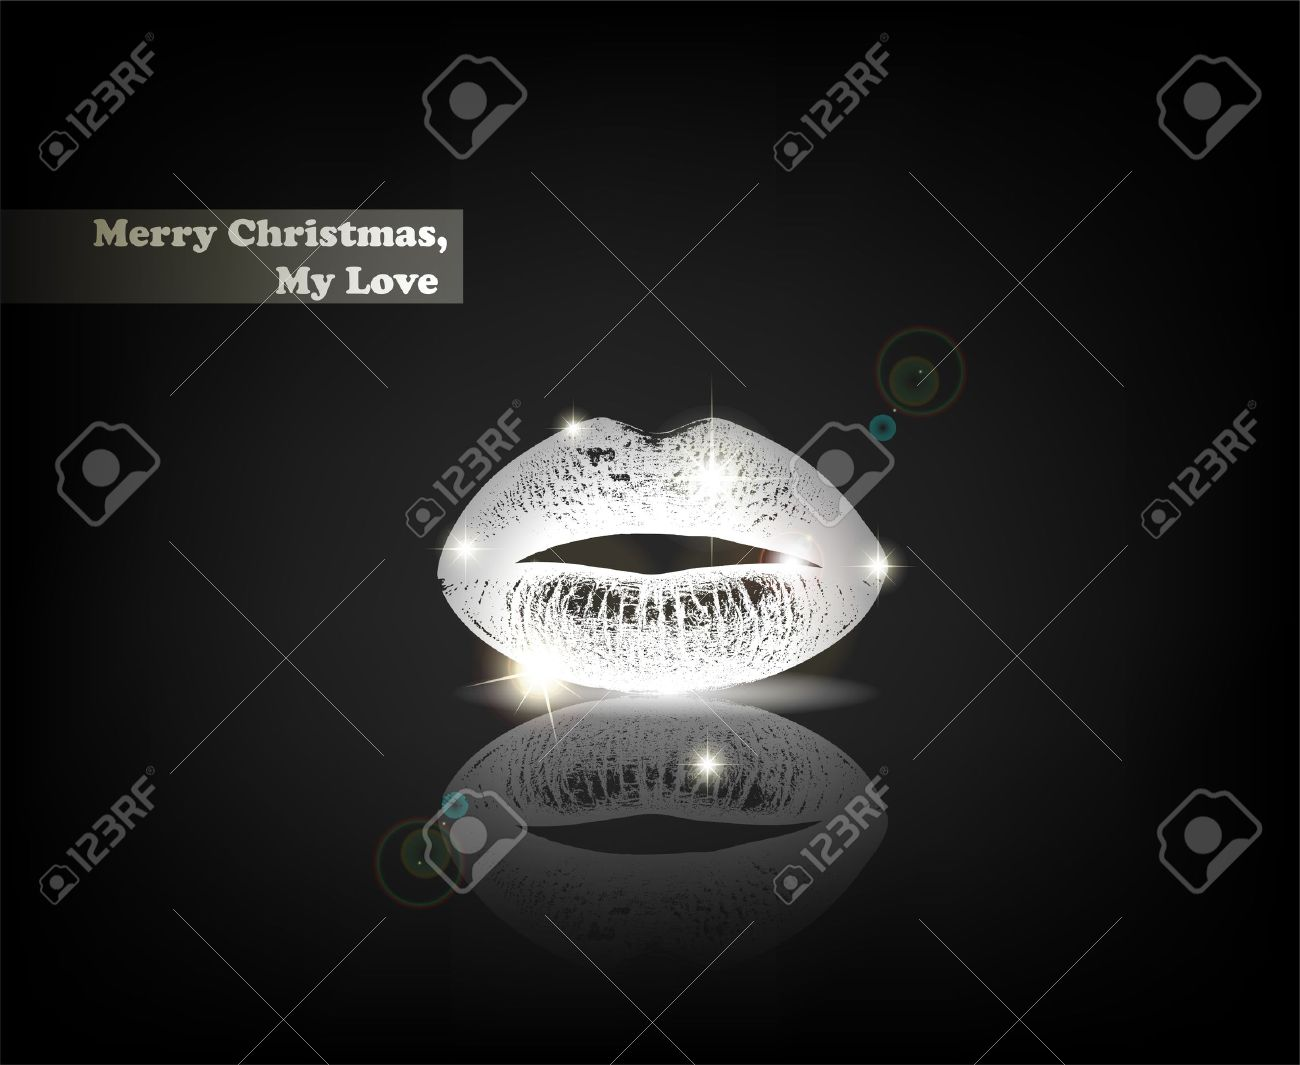 Merry Christmas My Love.Merry Christmas My Love From Serial Of Minimalistic